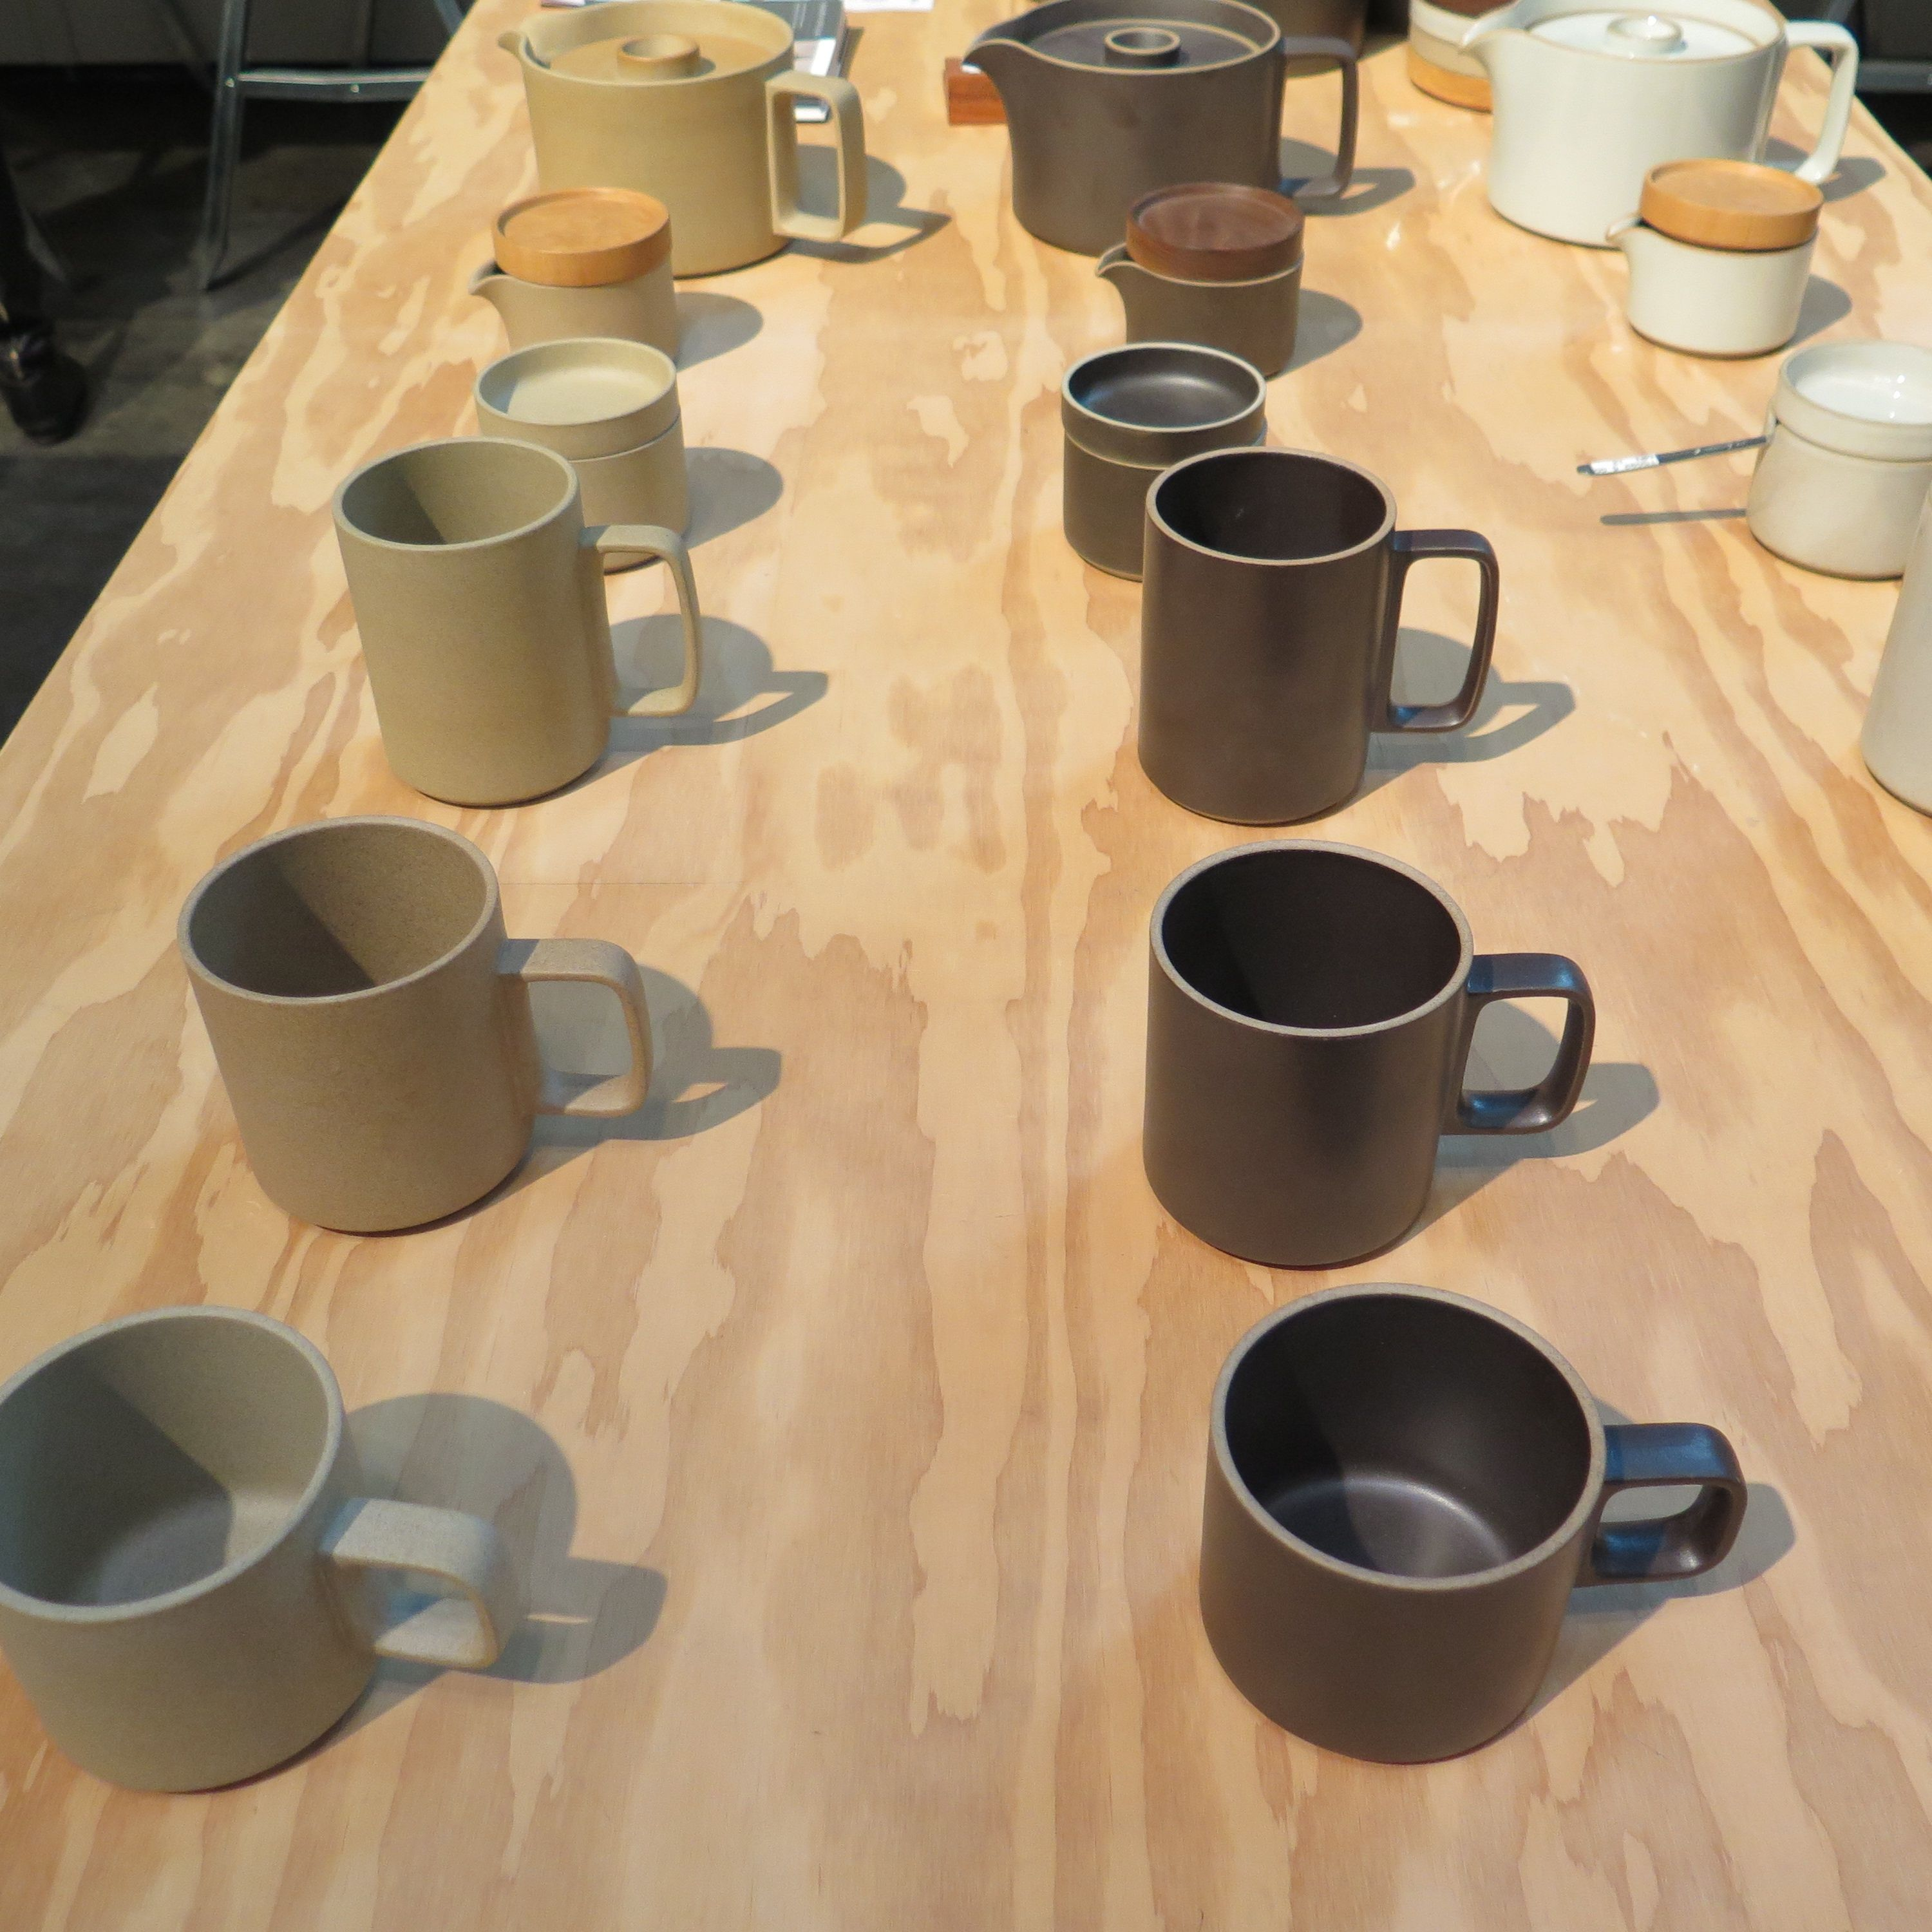 Homewares Trends: Homeware Trends Spotted At The NY Now Gift Market